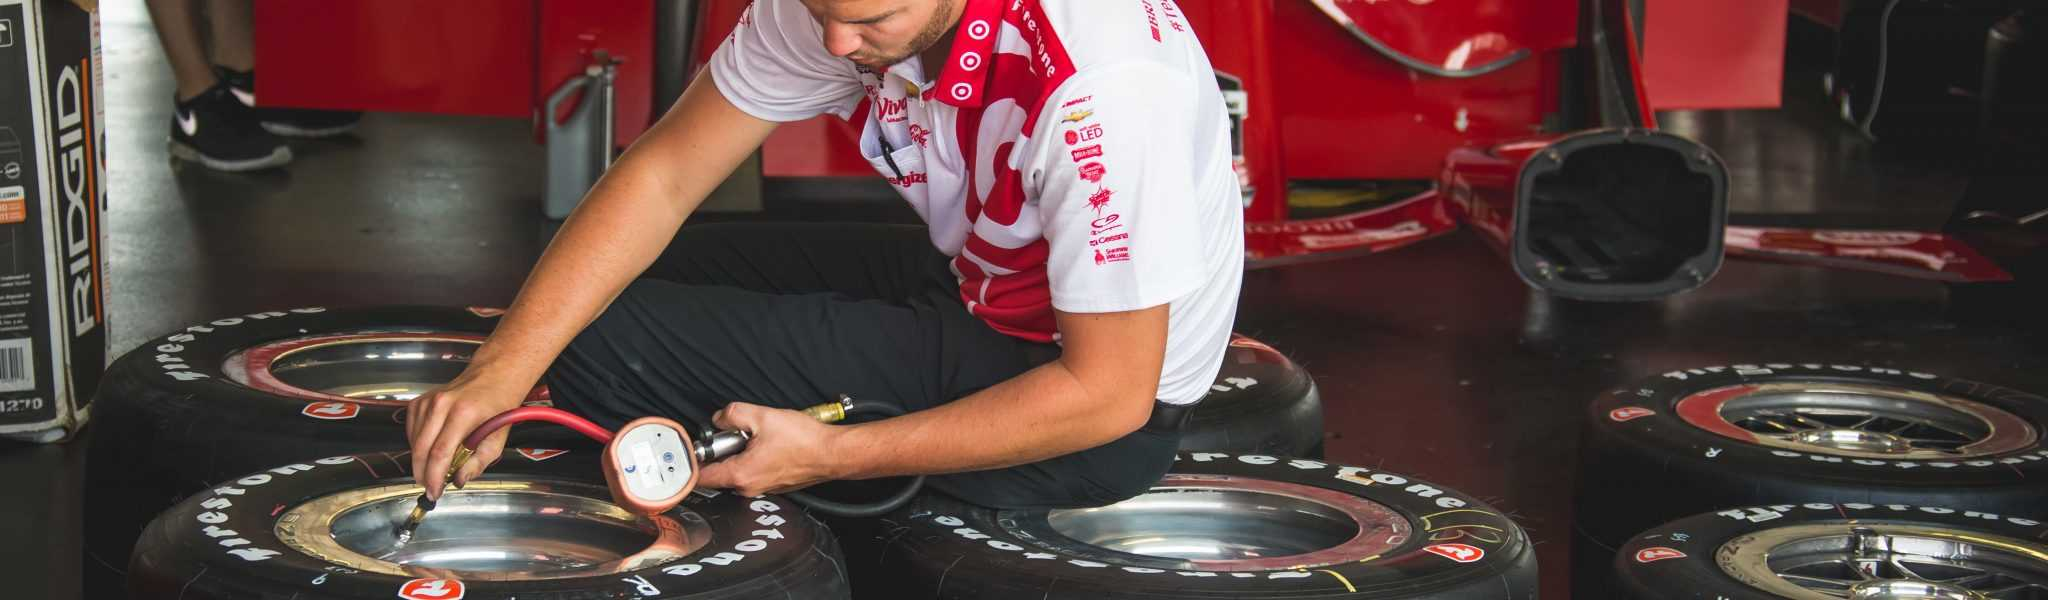 Behind the Scenes of an Indycar Race